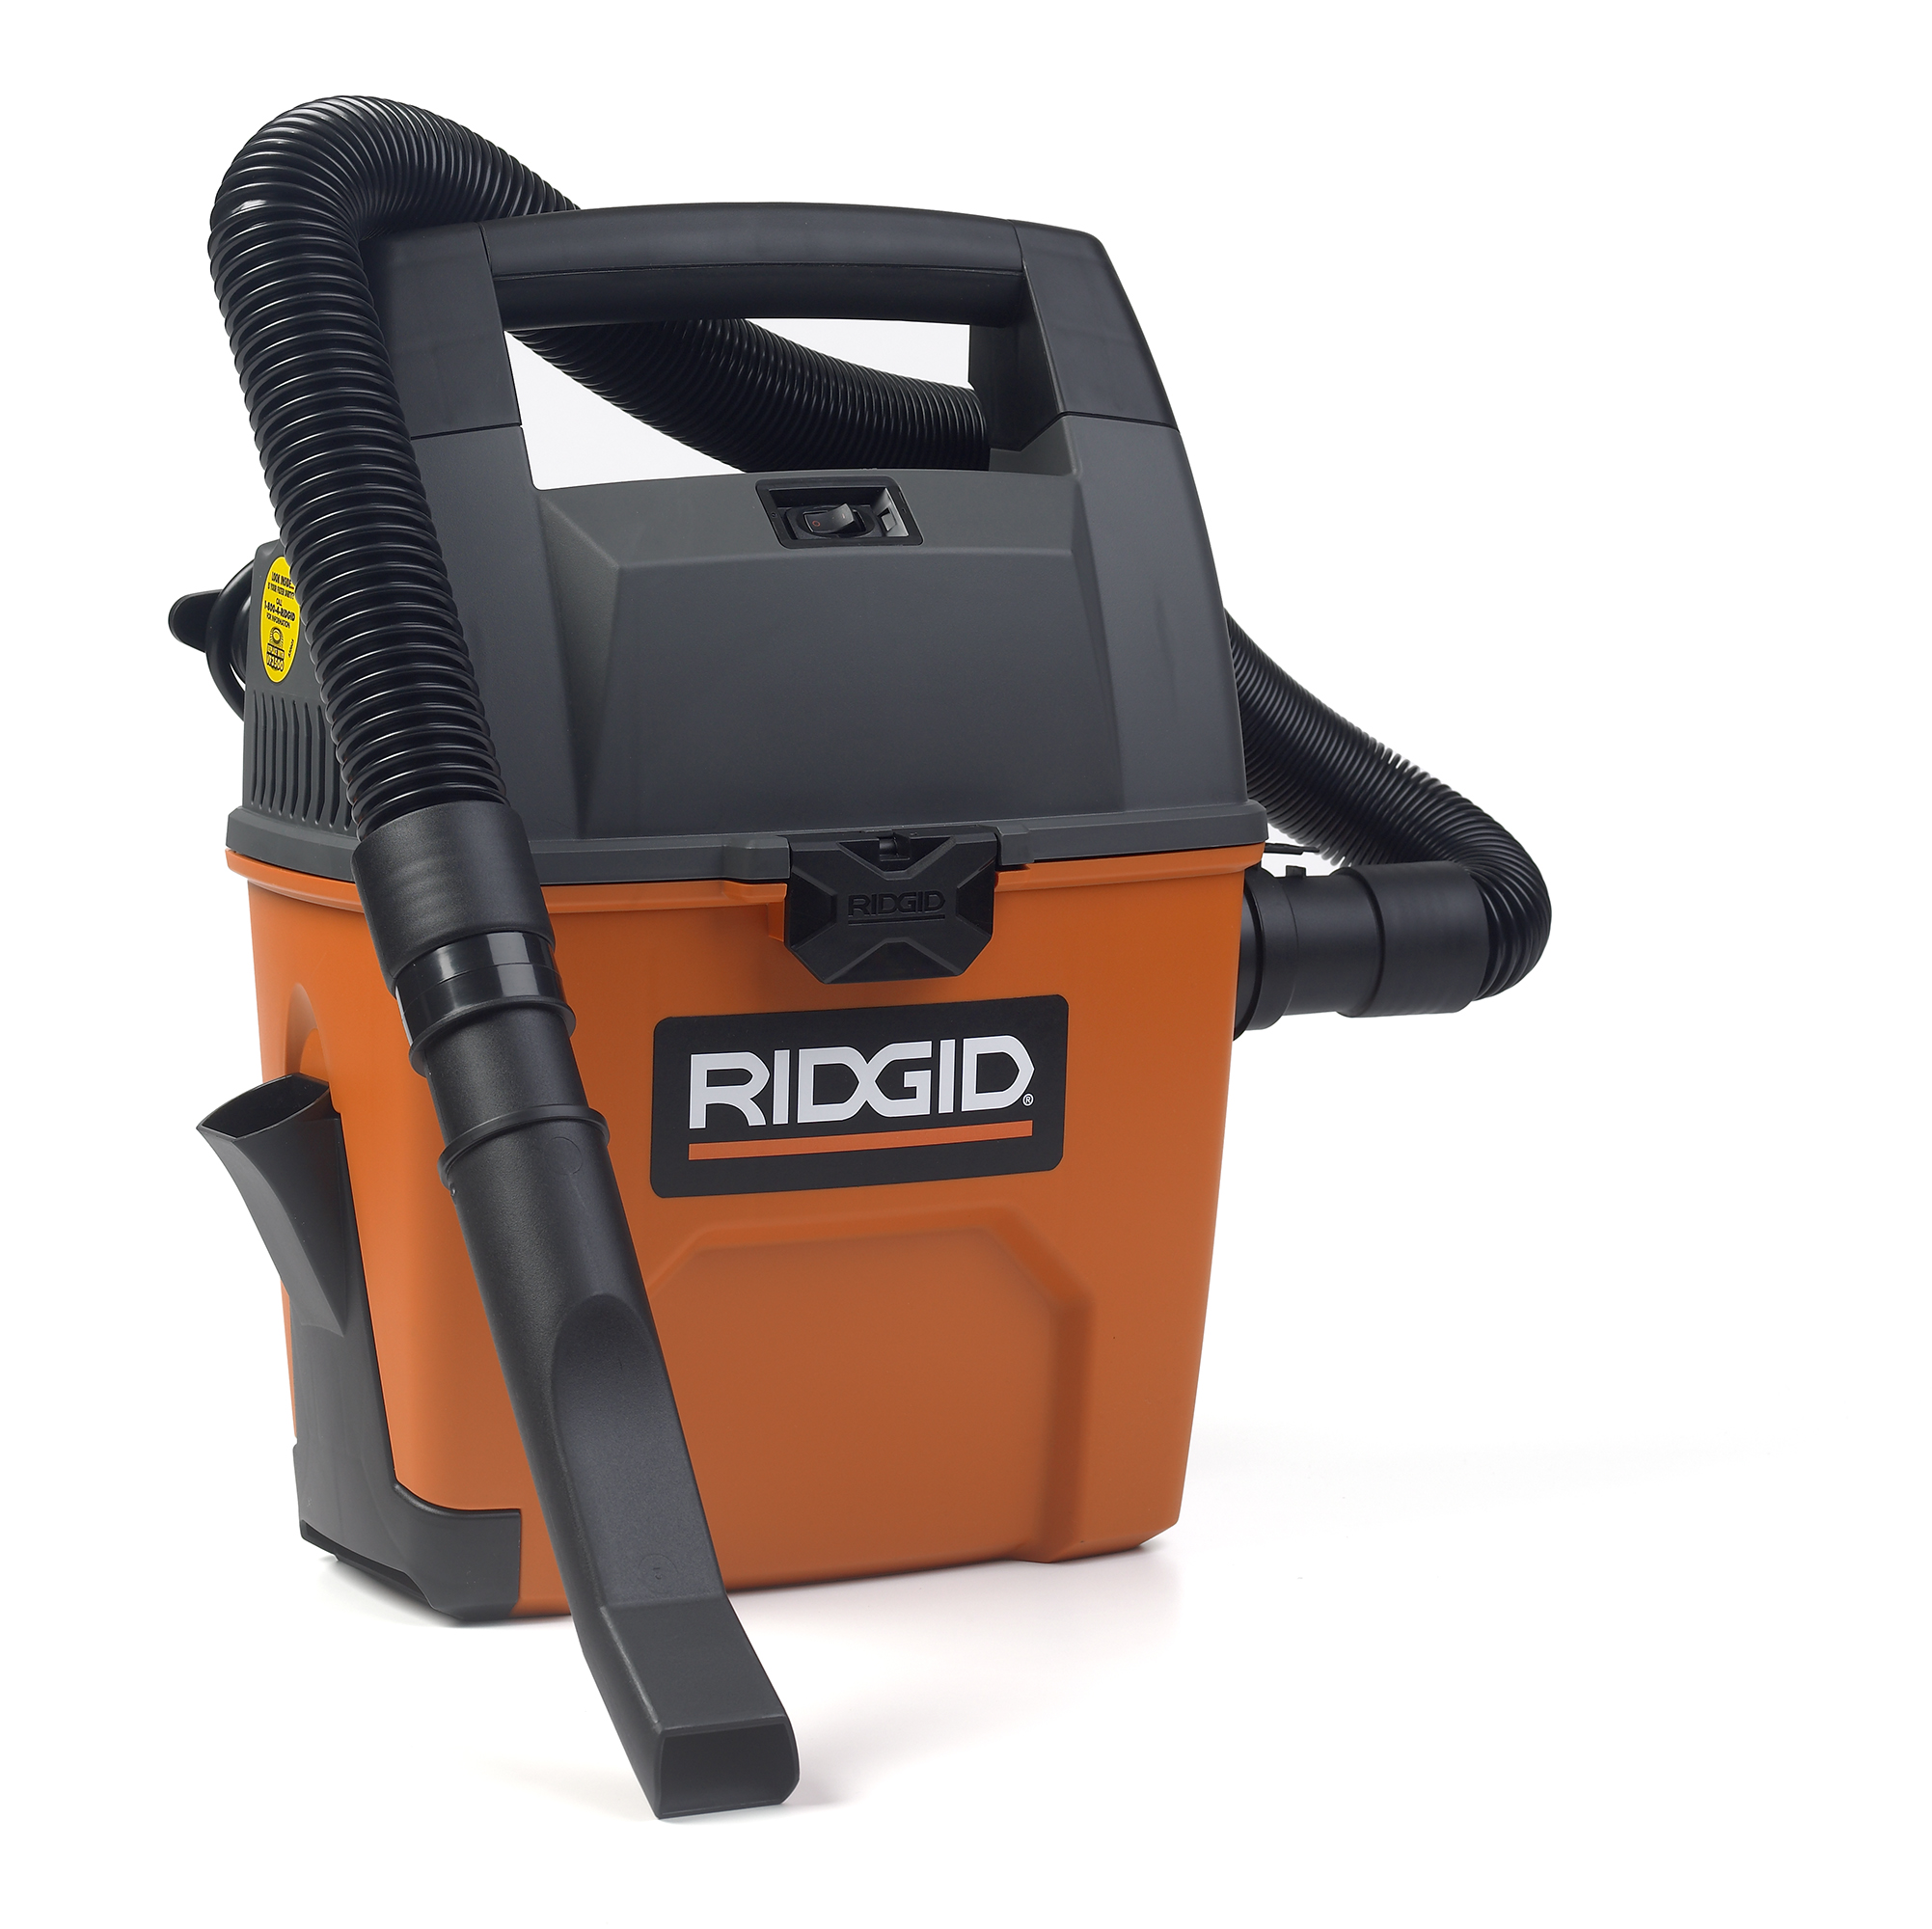 Portable Ac Vacuum 27 Lb Portable Countertop Ice Maker In Stainless Steel Portable Tool Box Steel Portable Light Table: Ridgid® Portable Pro Named As Best Overall Small Wet/Dry Vac